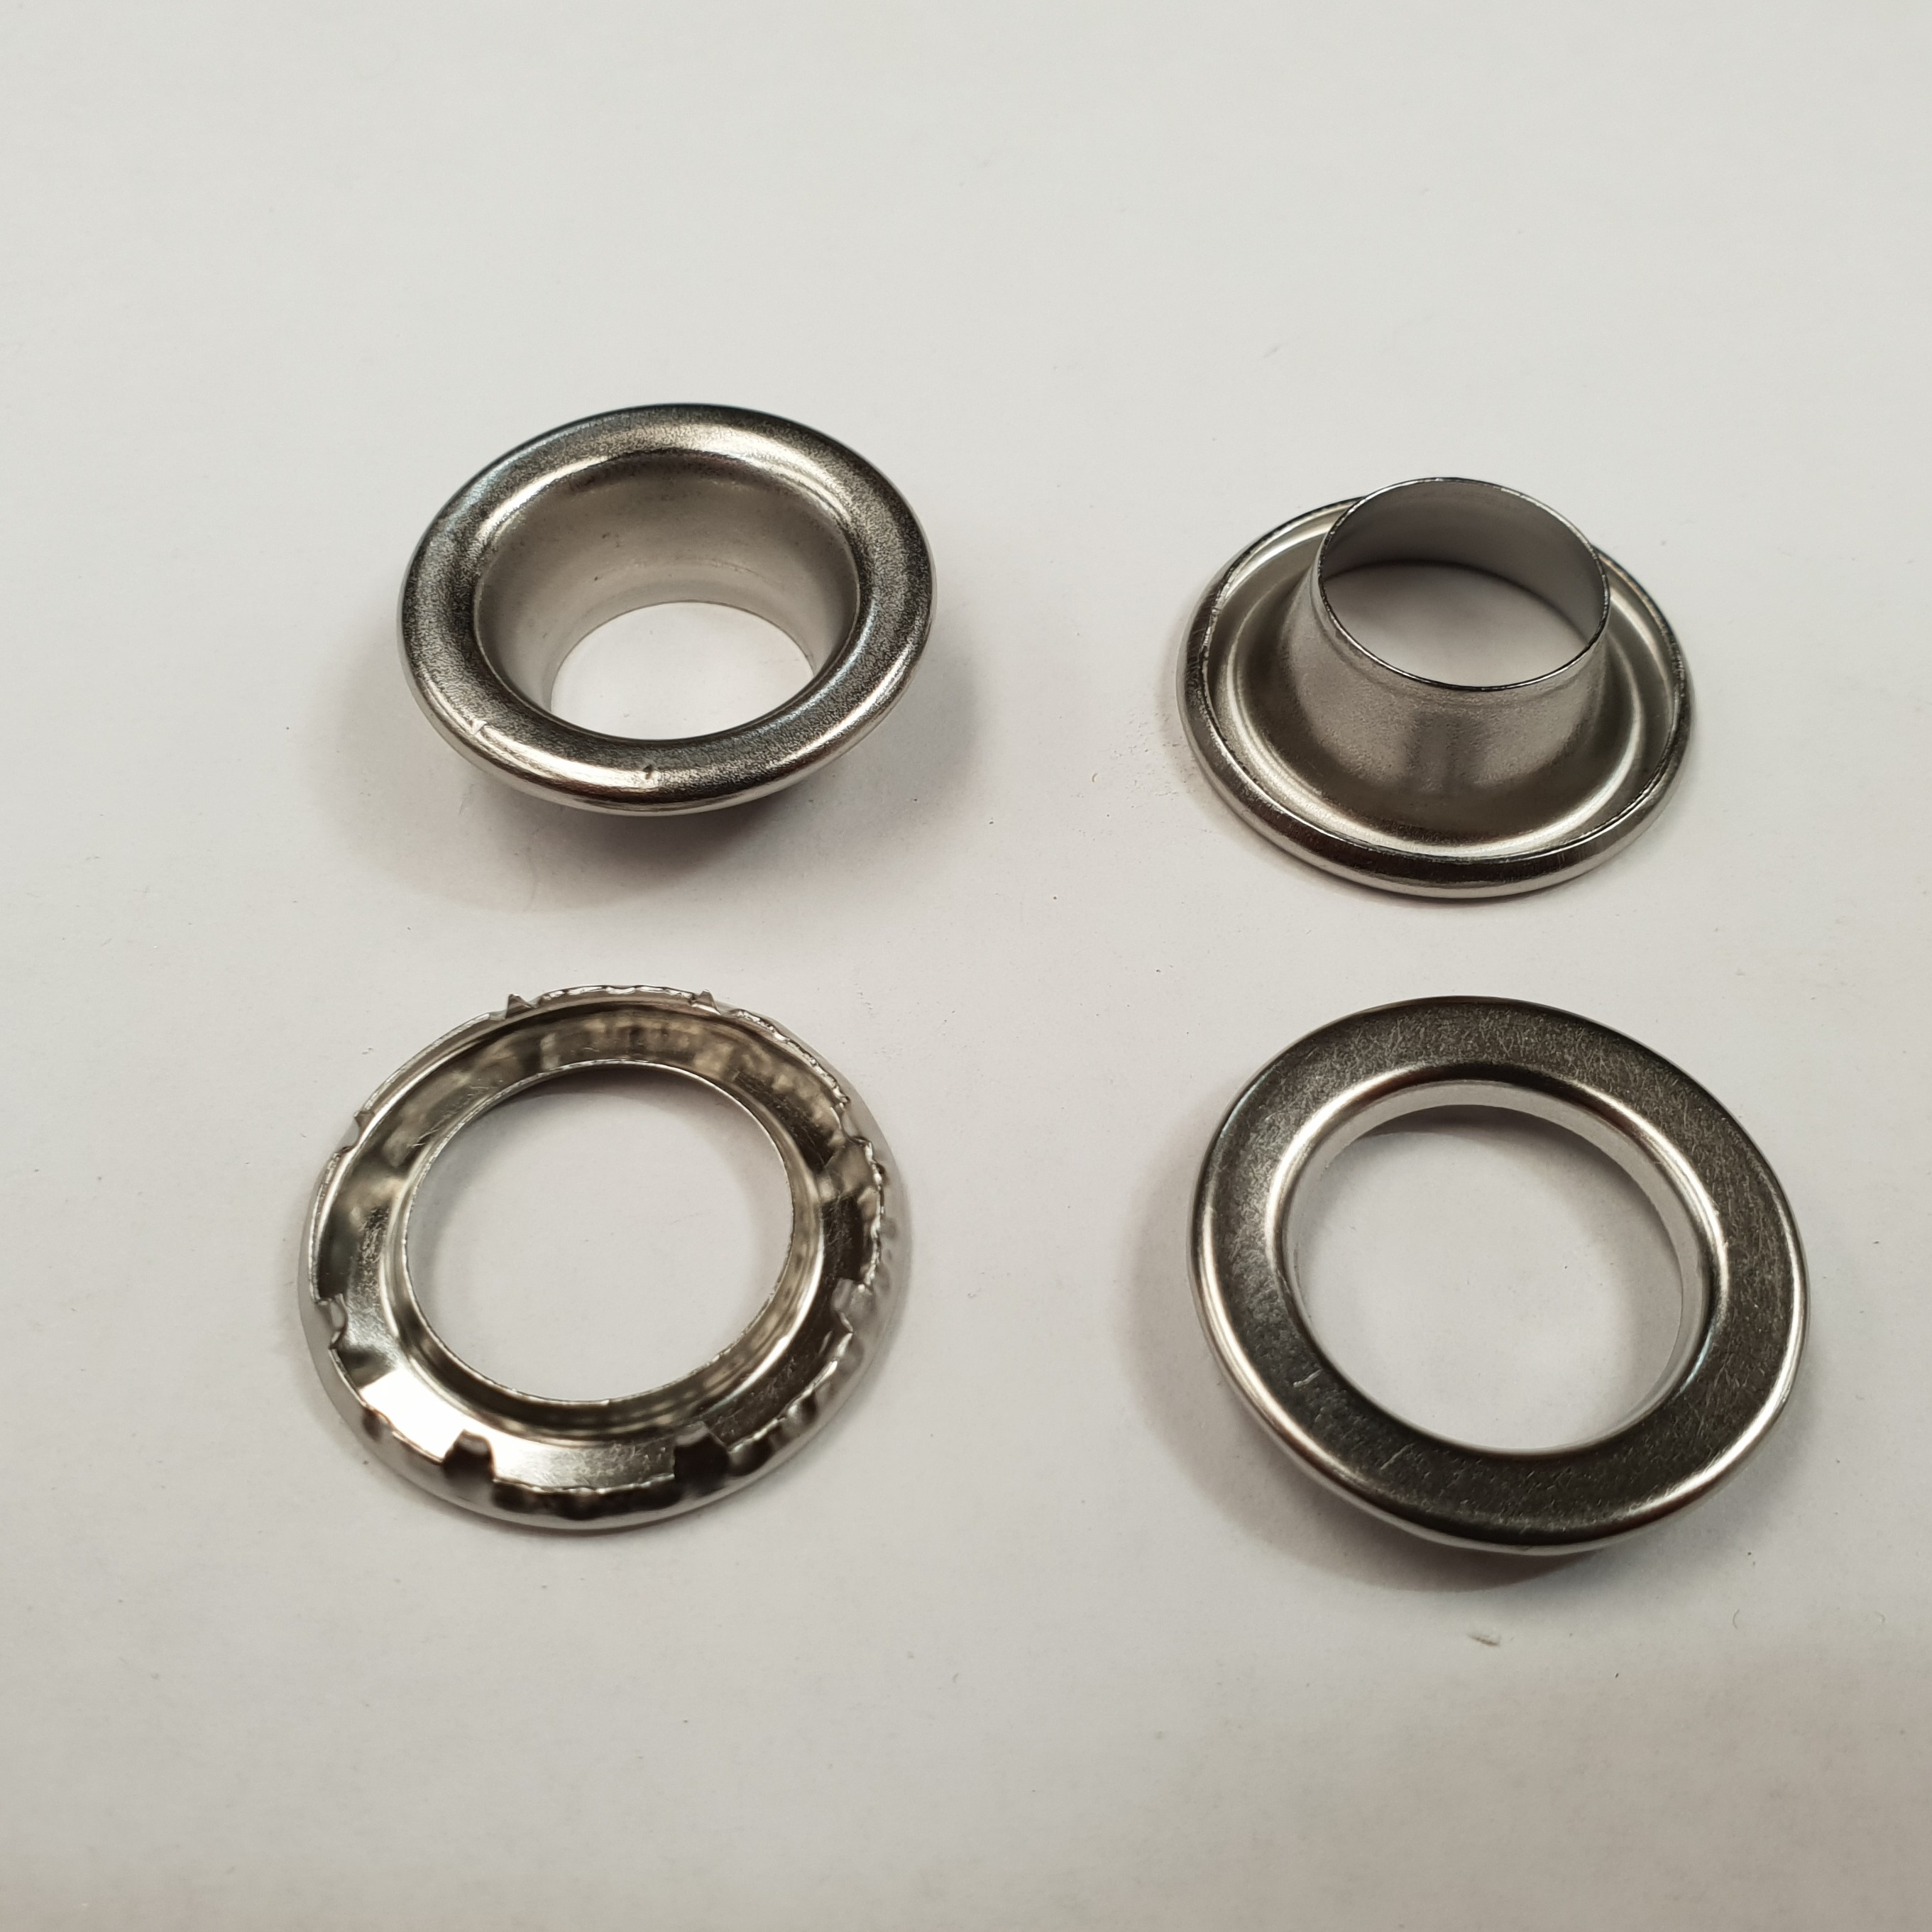 No 4 Stainless Grommets